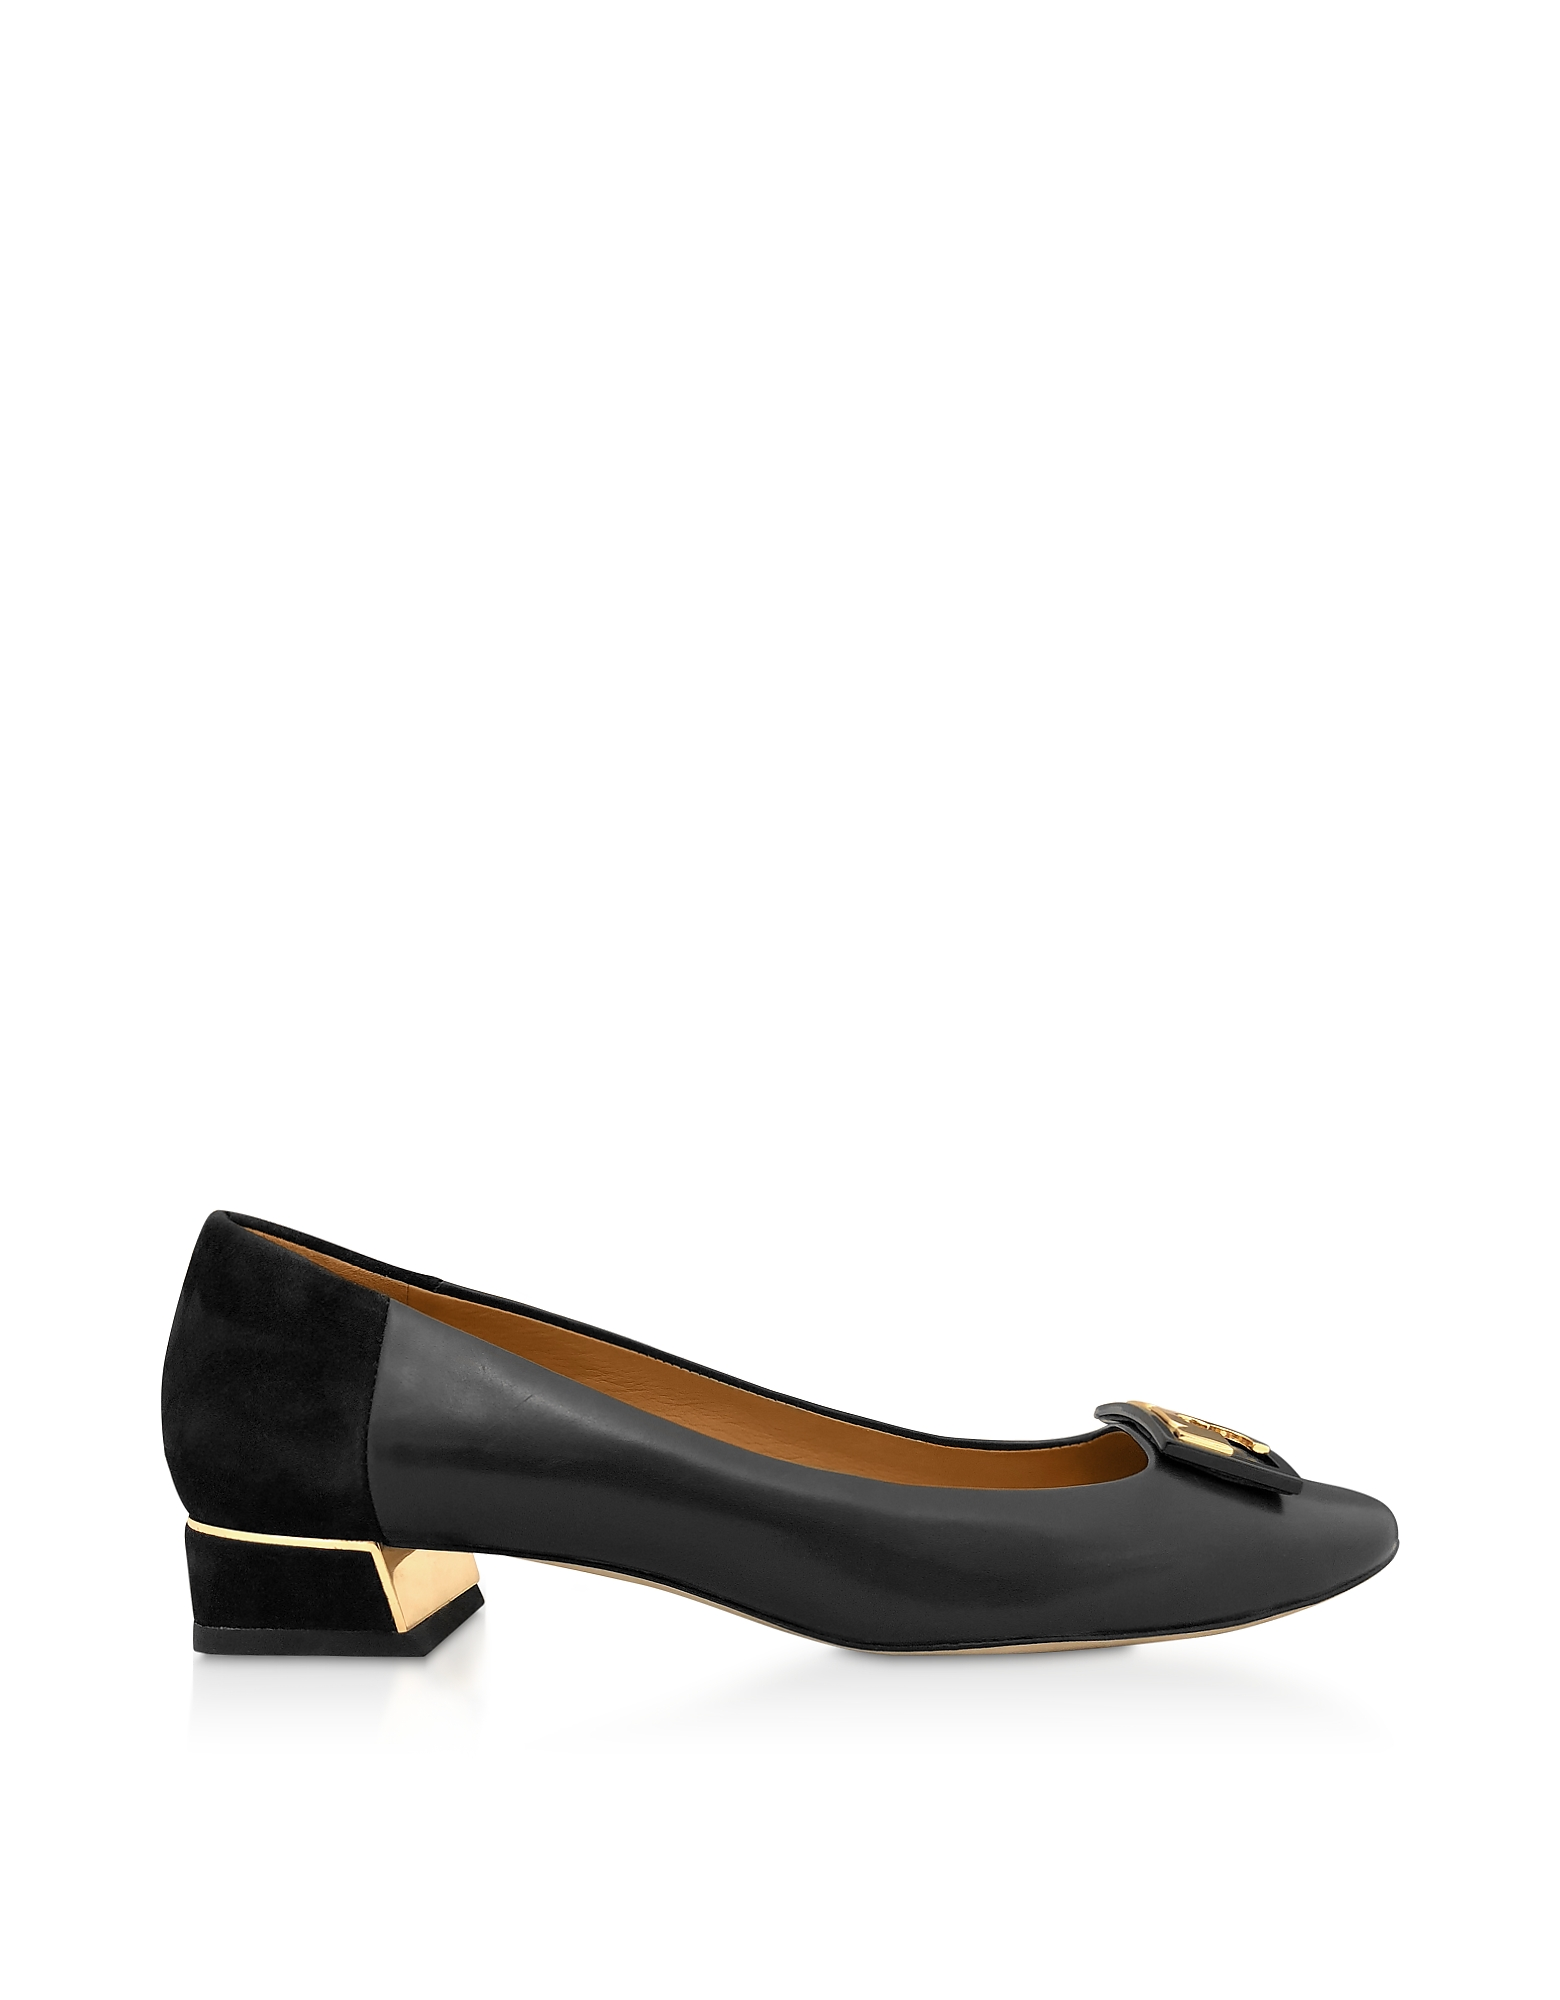 TORY BURCH | Tory Burch Designer Shoes, Perfet Black Gigi 20mm Round Toe Flat Ballerinas | Goxip